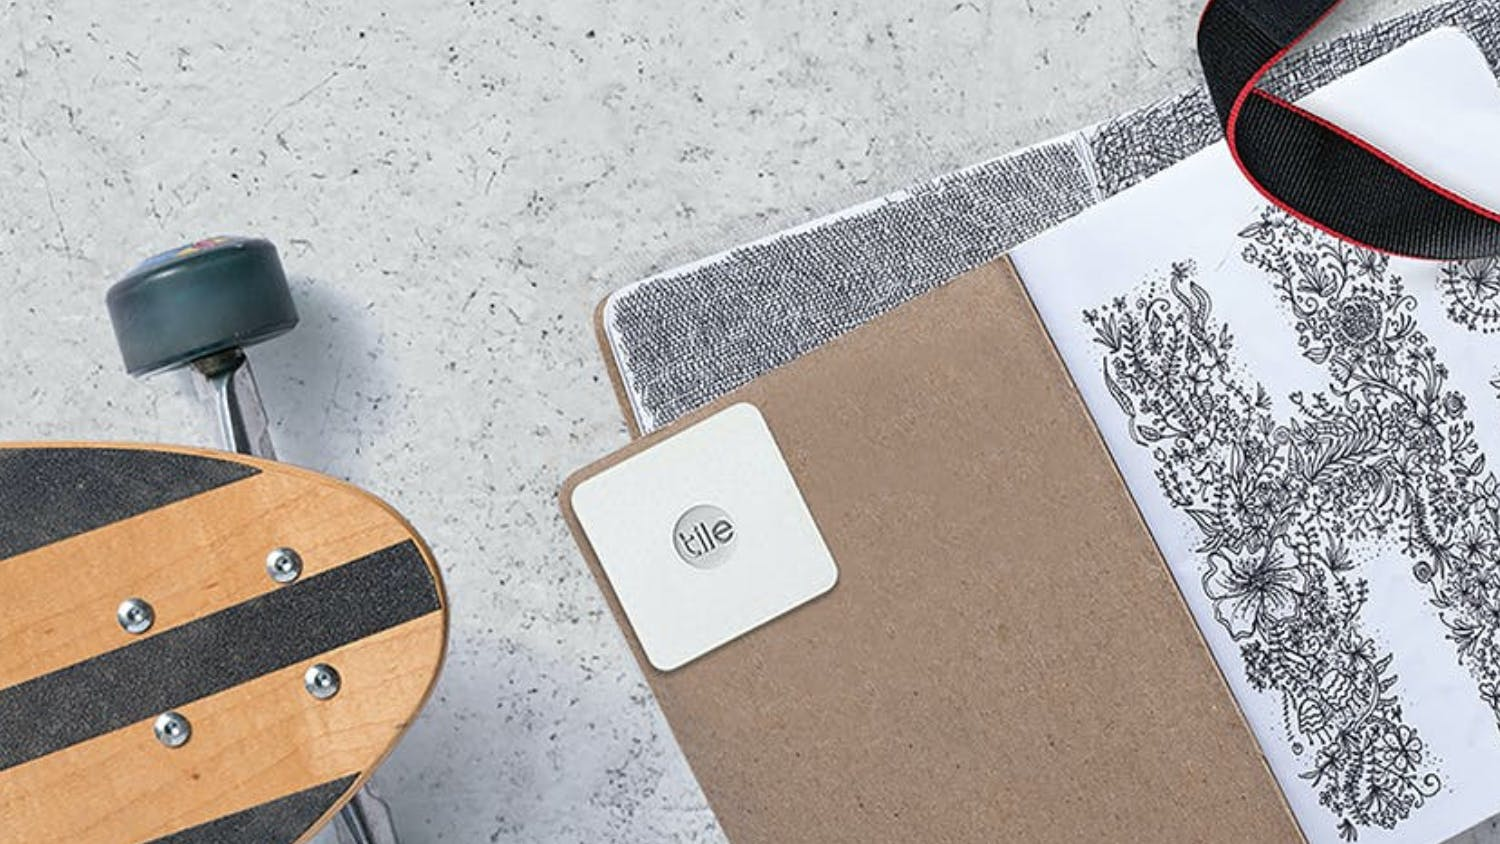 Tile Slim Bluetooth Tracker - Single Pack